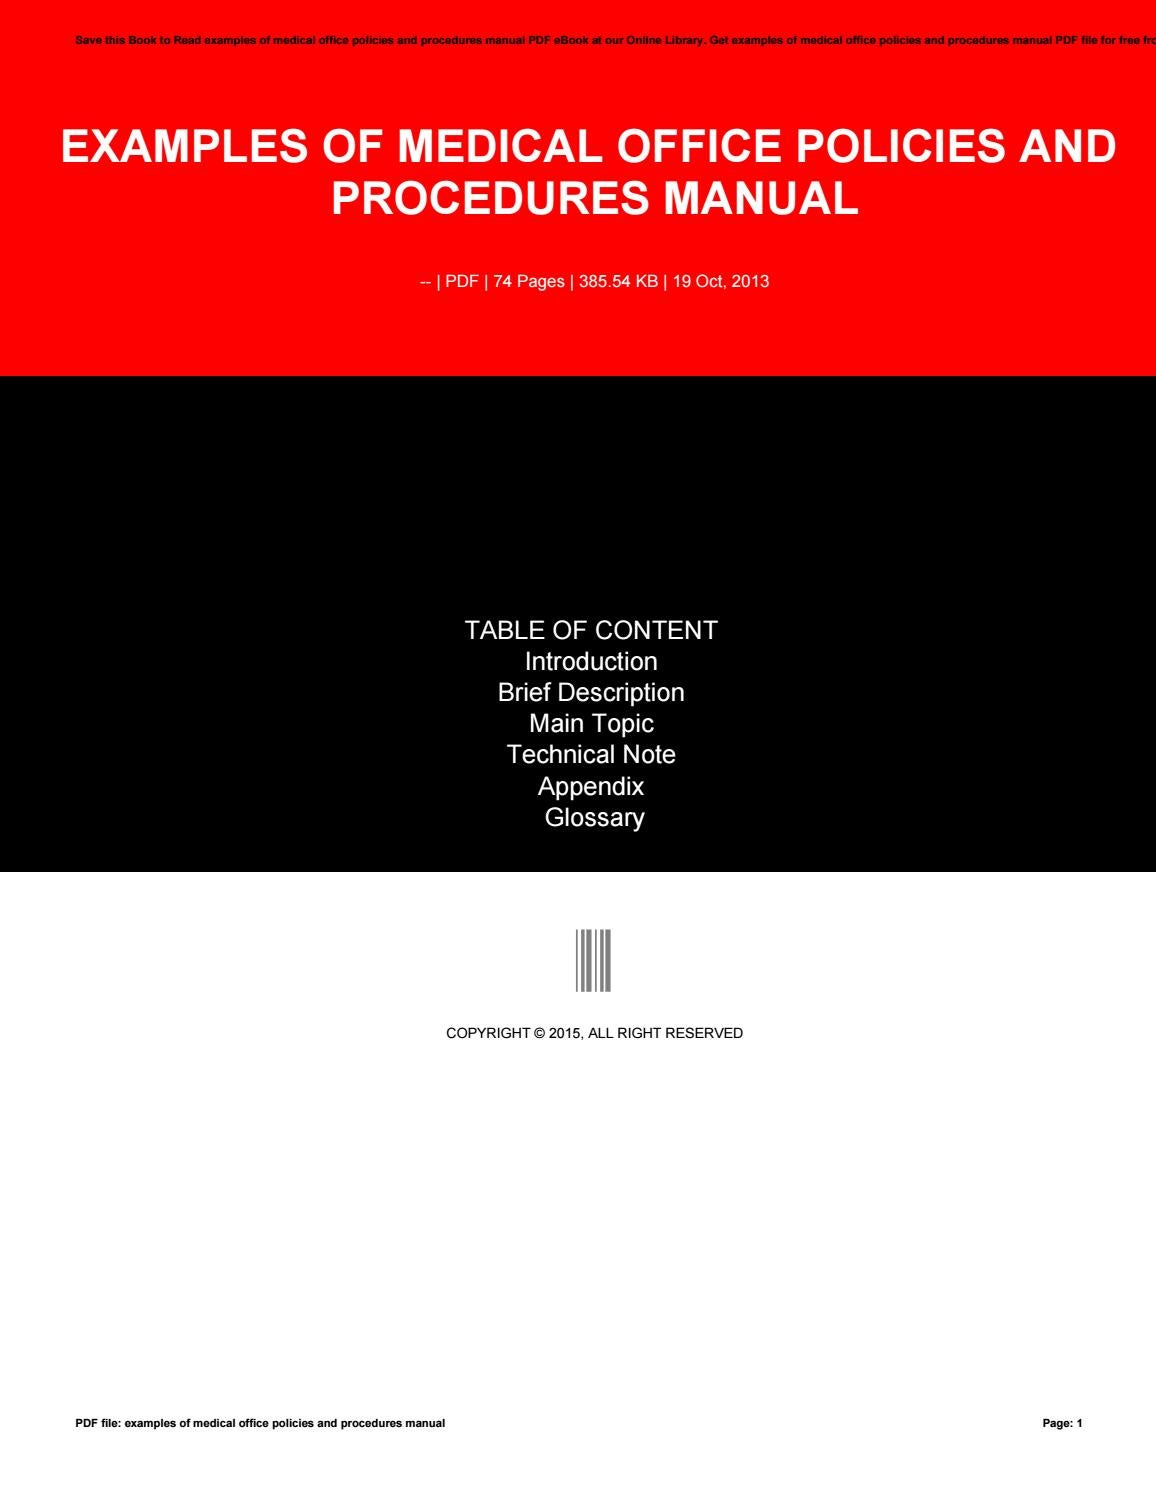 Examples of medical office policies and procedures manual by mail1253 -  issuu